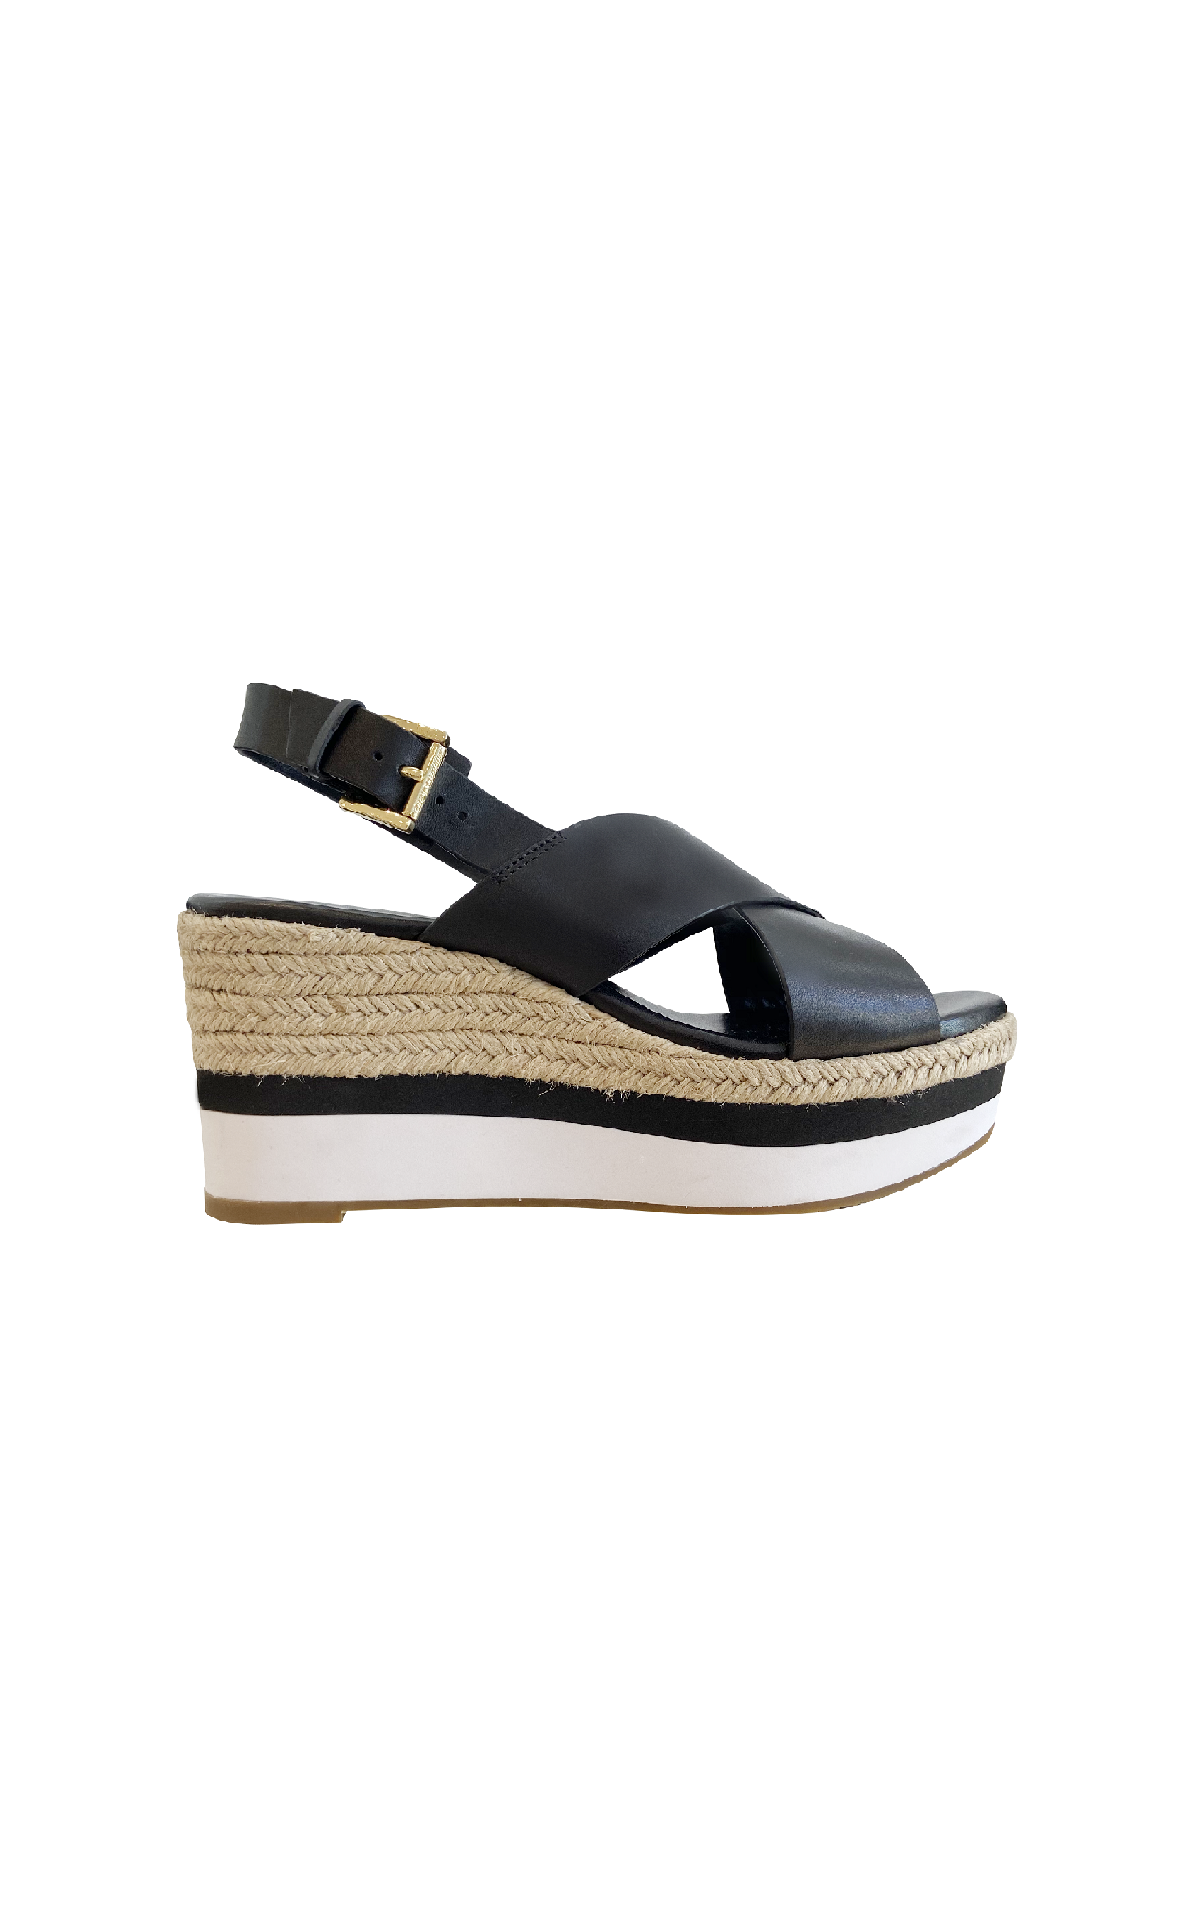 Black platform sandal with esparto Michael Kors